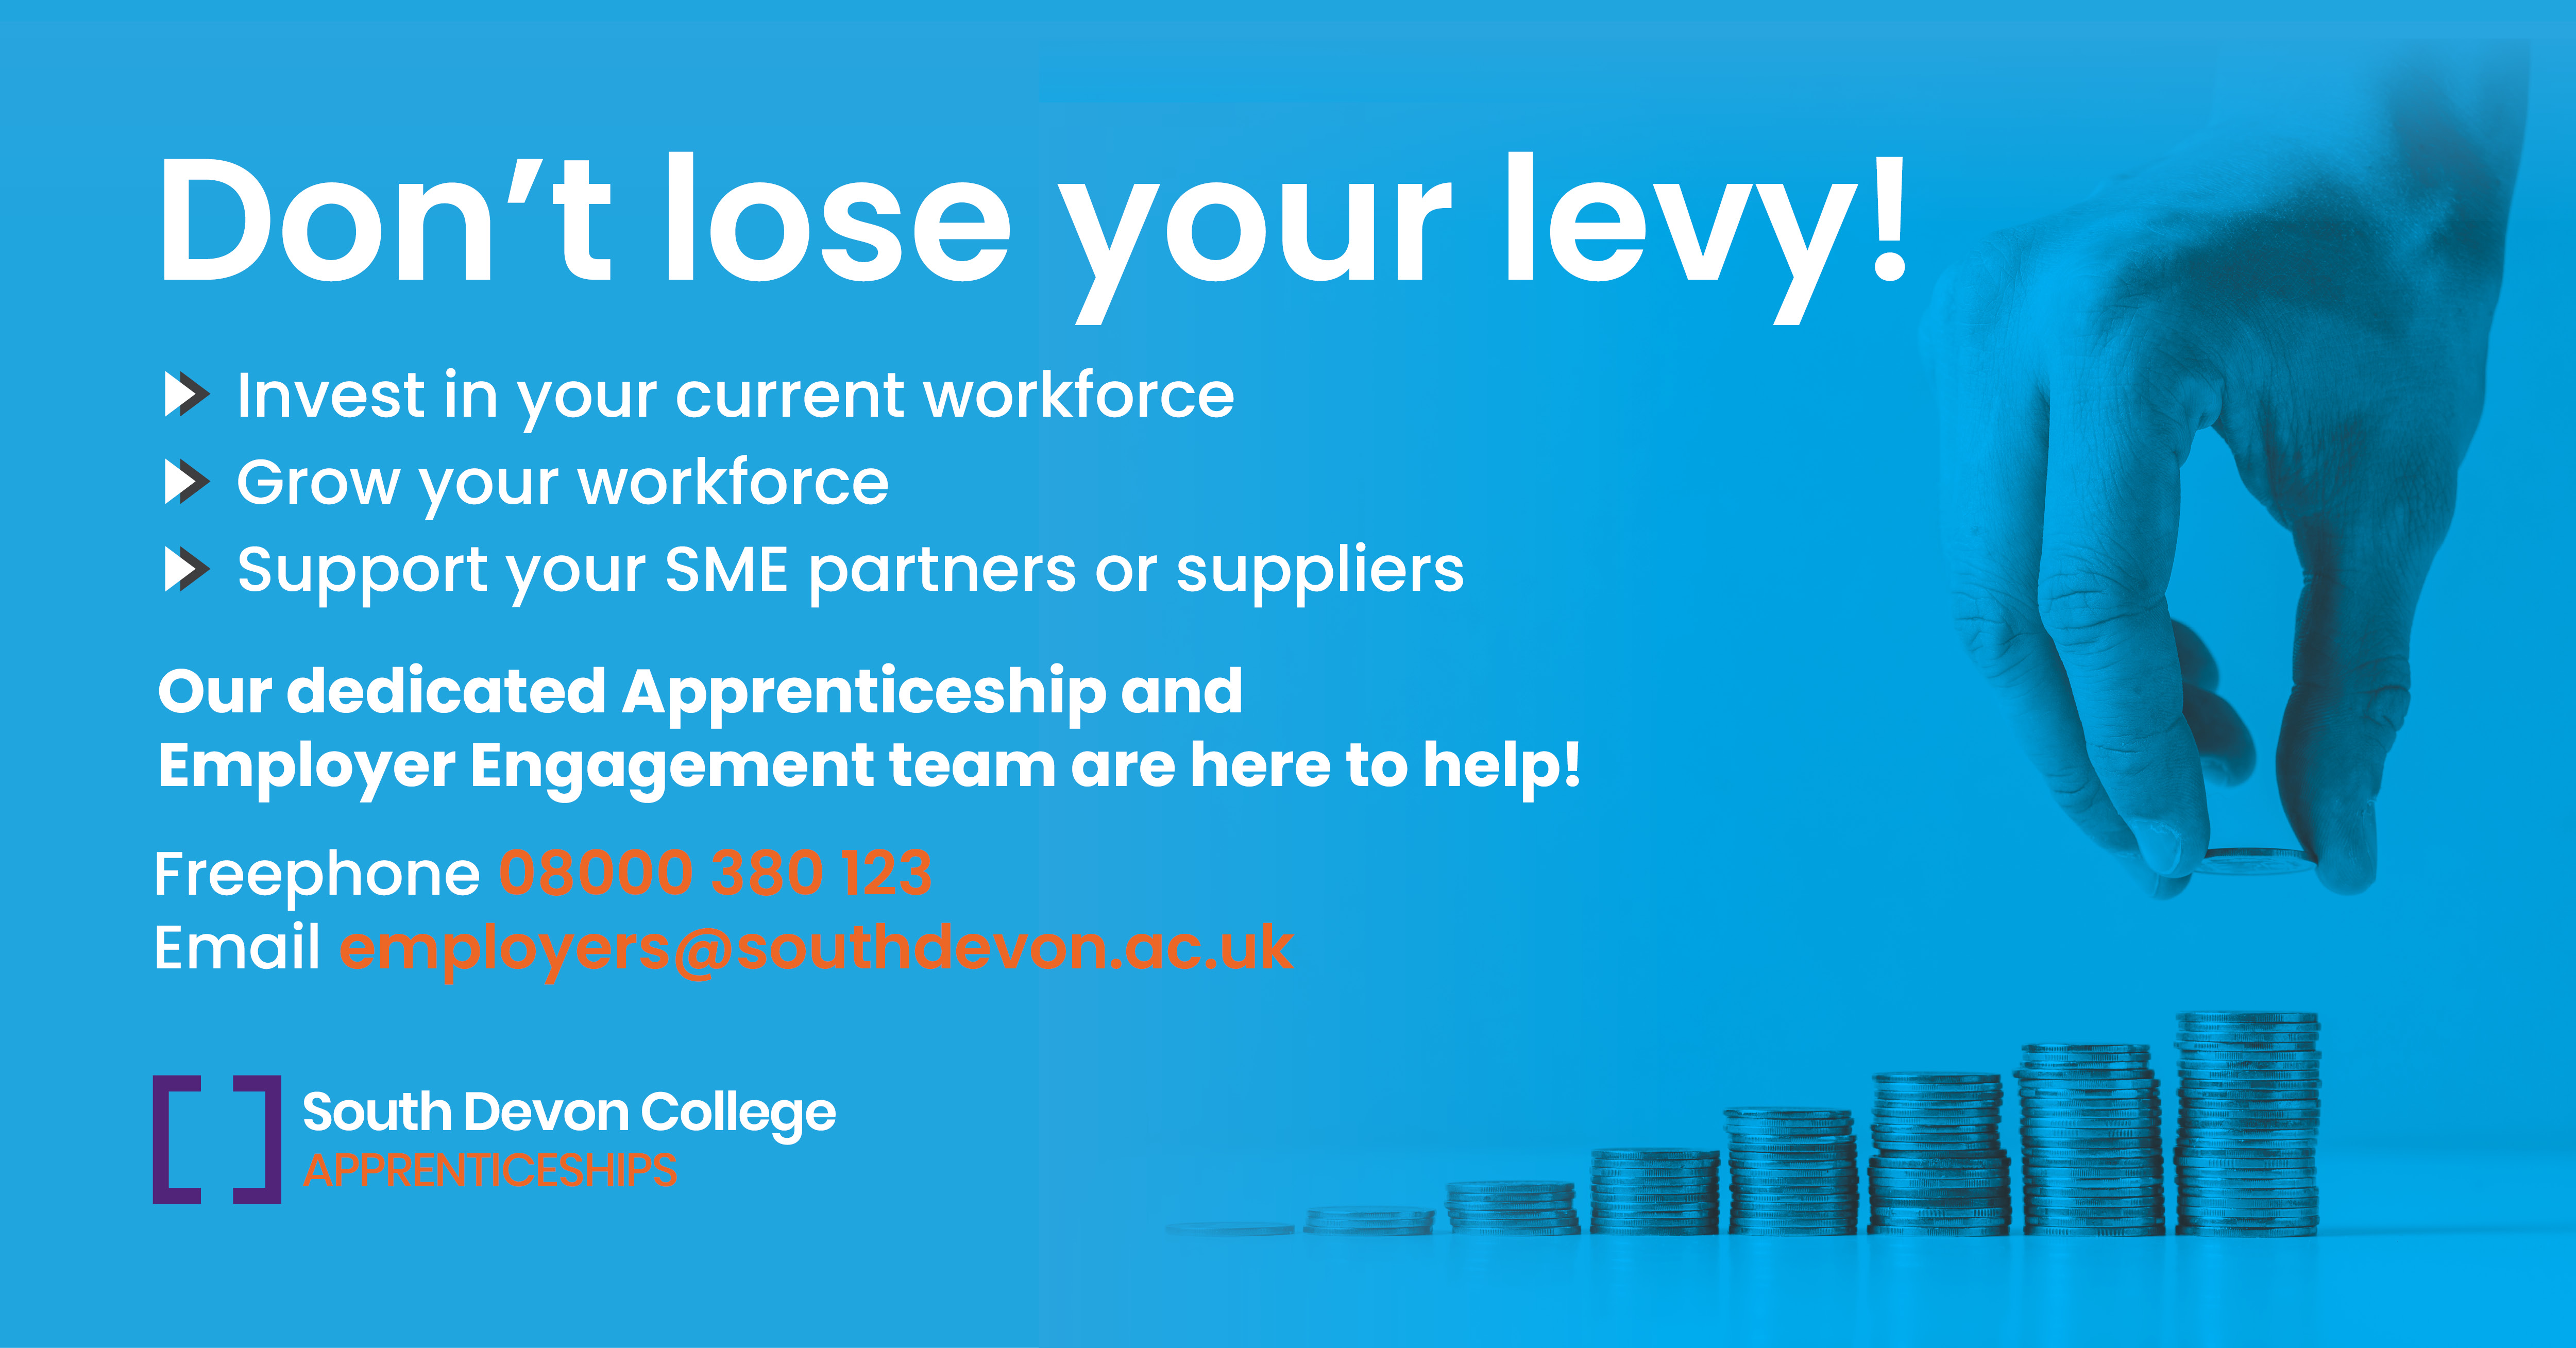 Degree Level Management Training For As Little As 31 25 Per Month South Devon College